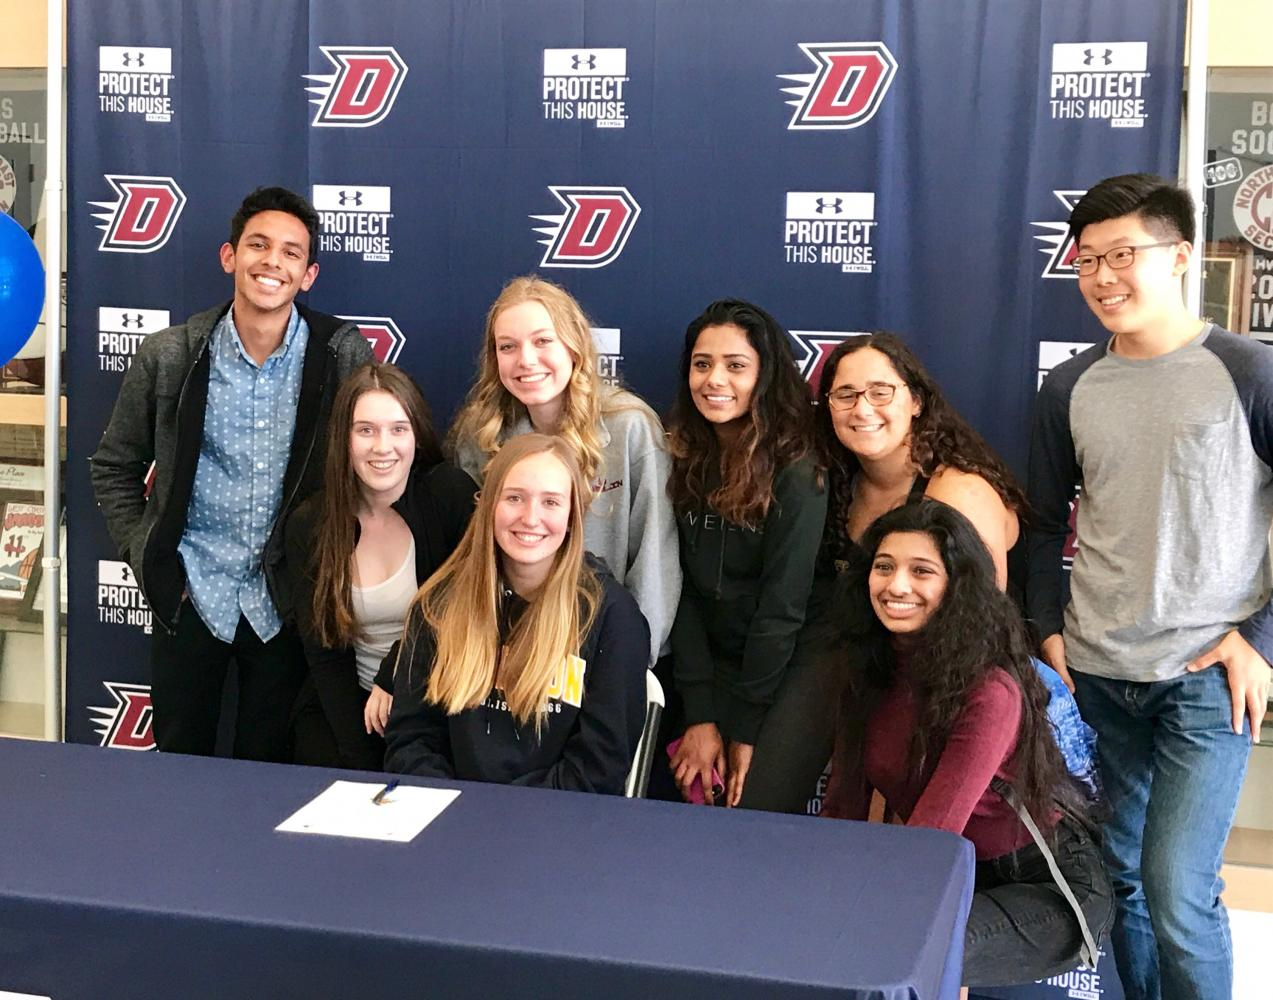 Sarah Grier at her signing day on May 17. She will play DIII college volleyball at Carlton College in Minnesota next year.